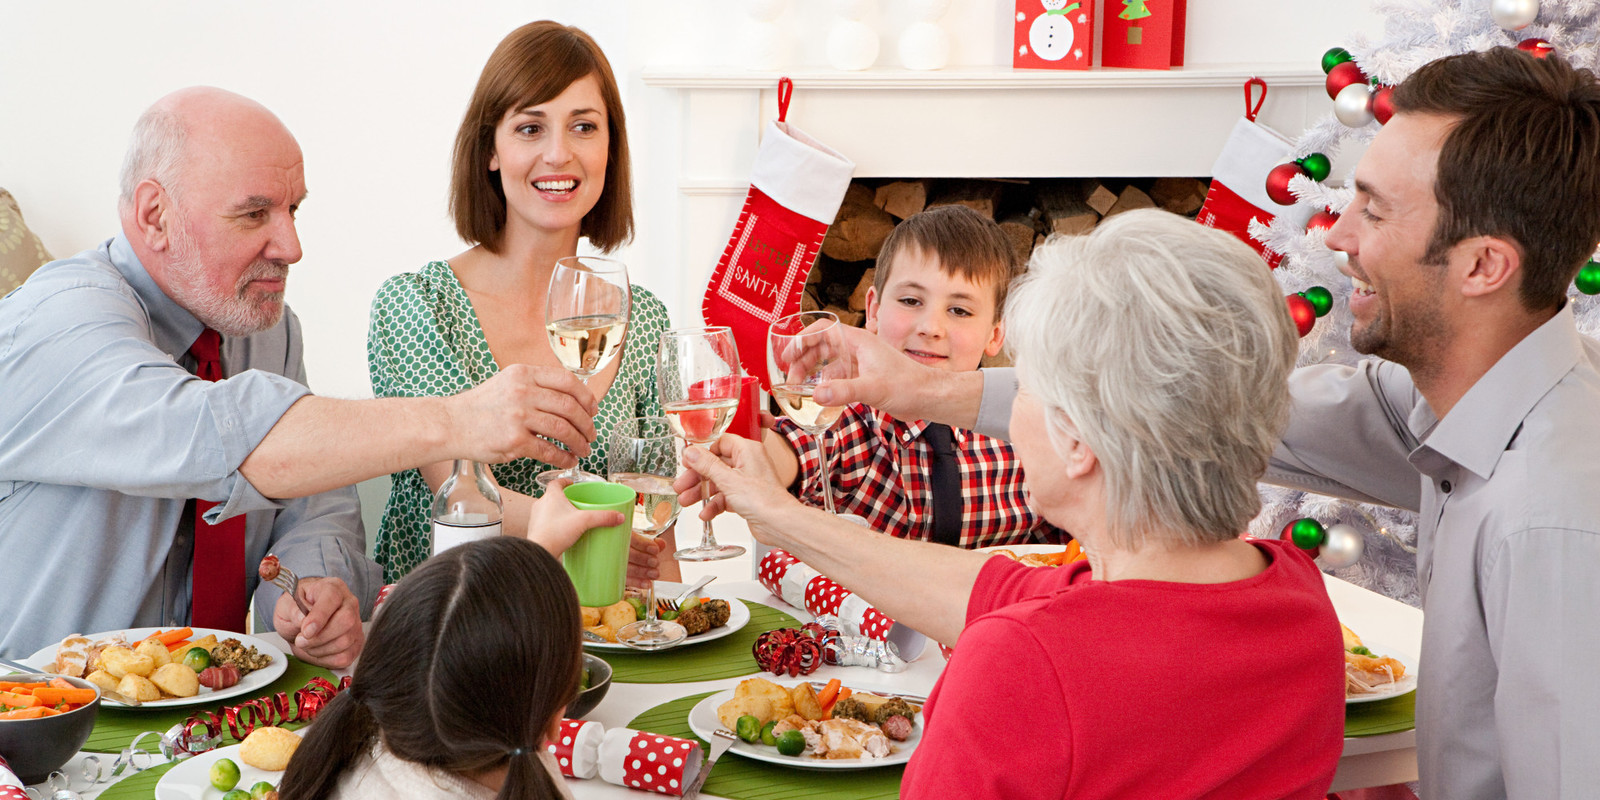 16 ways to impress your in-laws this Christmas